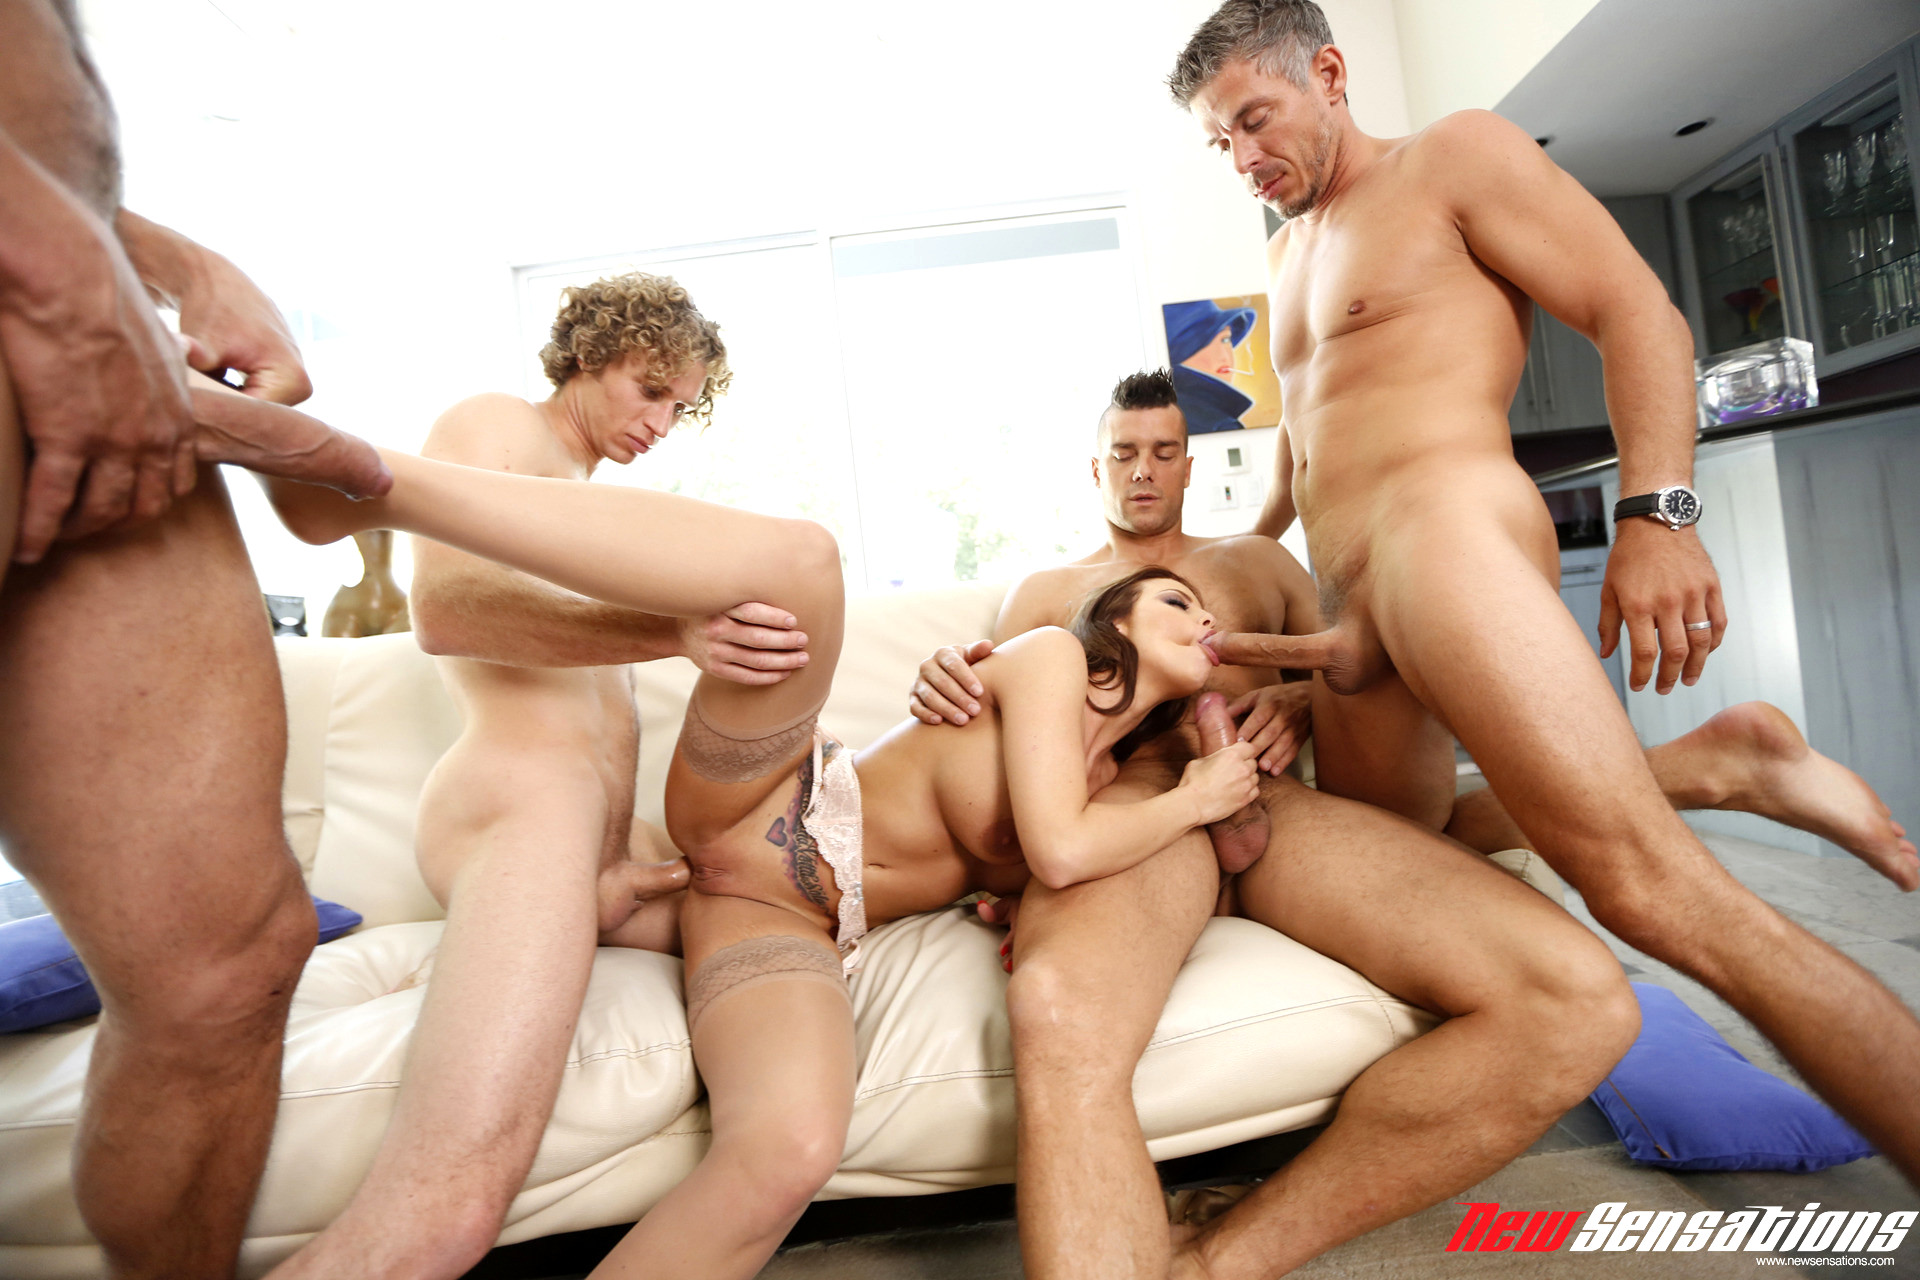 five-men-on-one-girl-porn-with-redhair